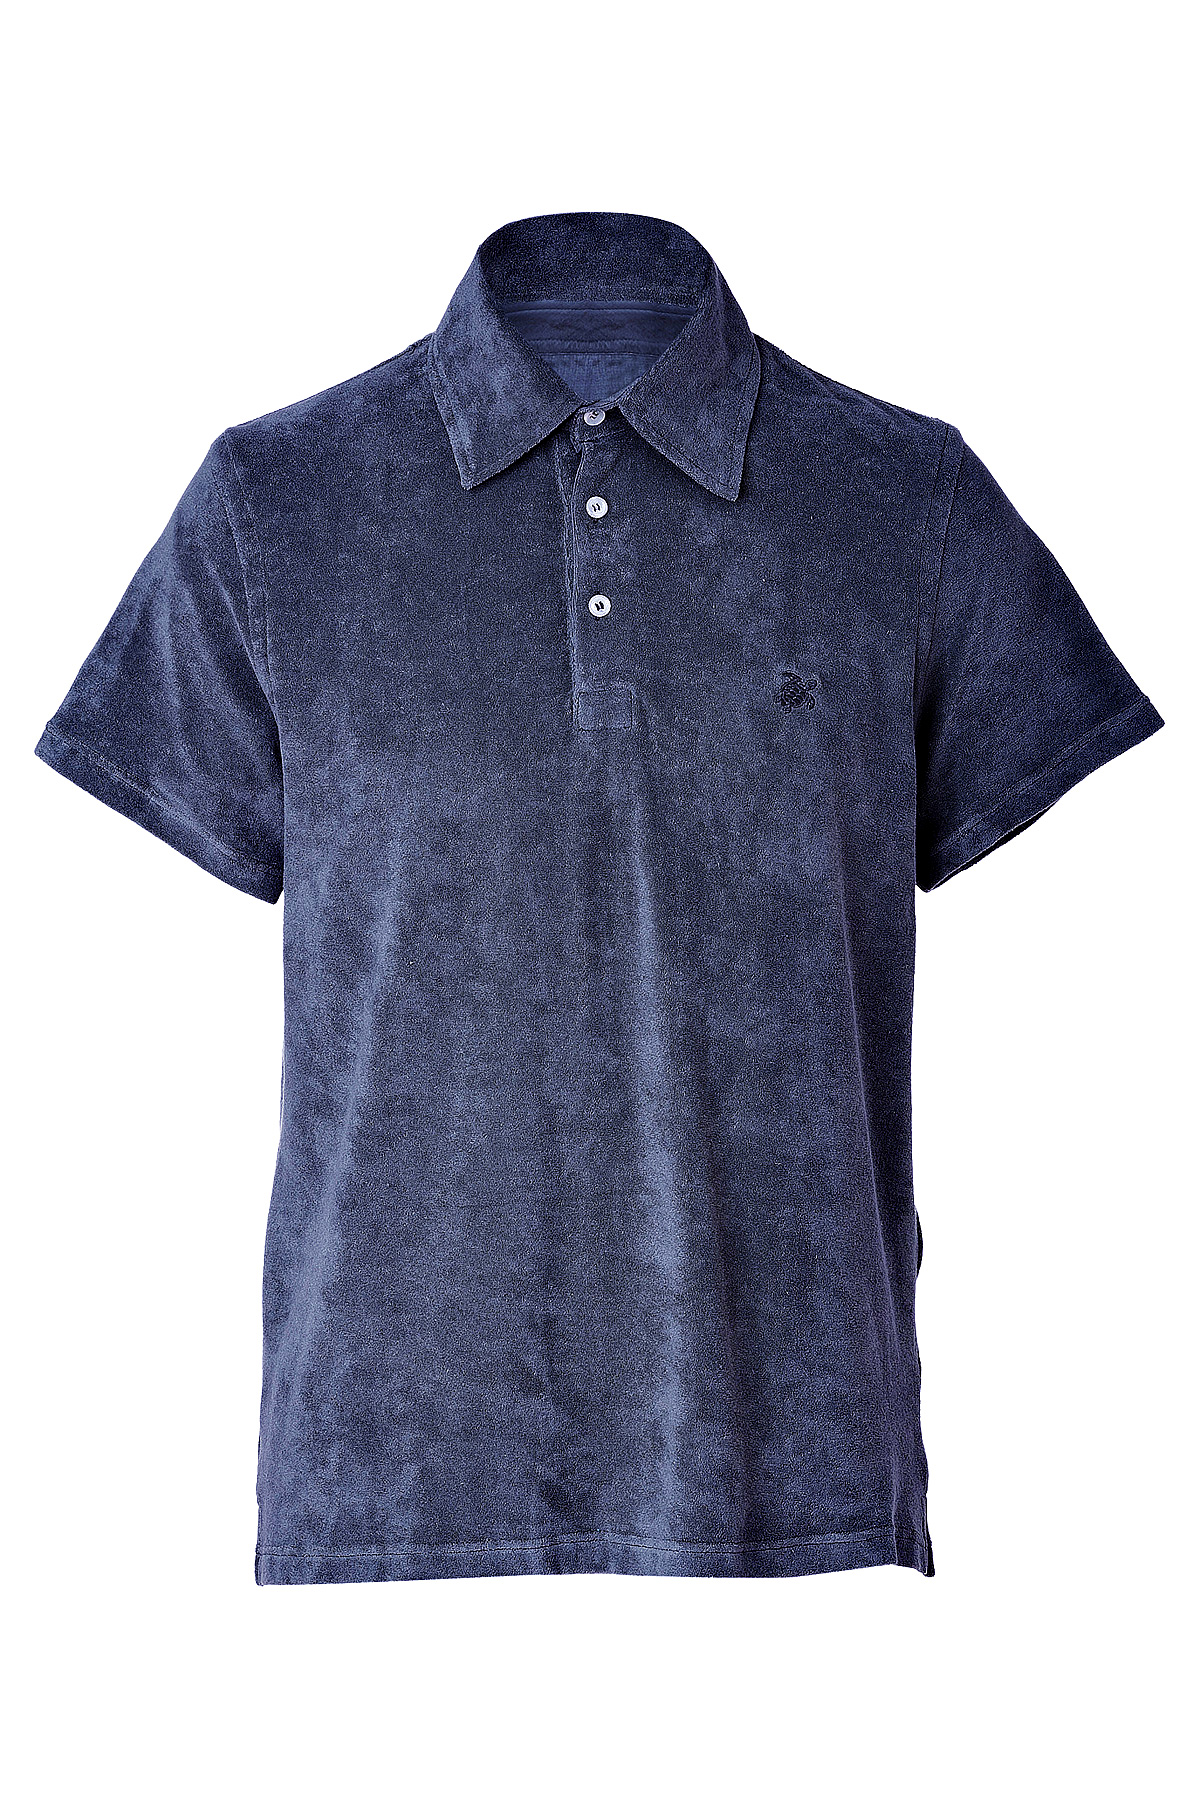 lyst vilebrequin navy terry cloth polo shirt in blue for men